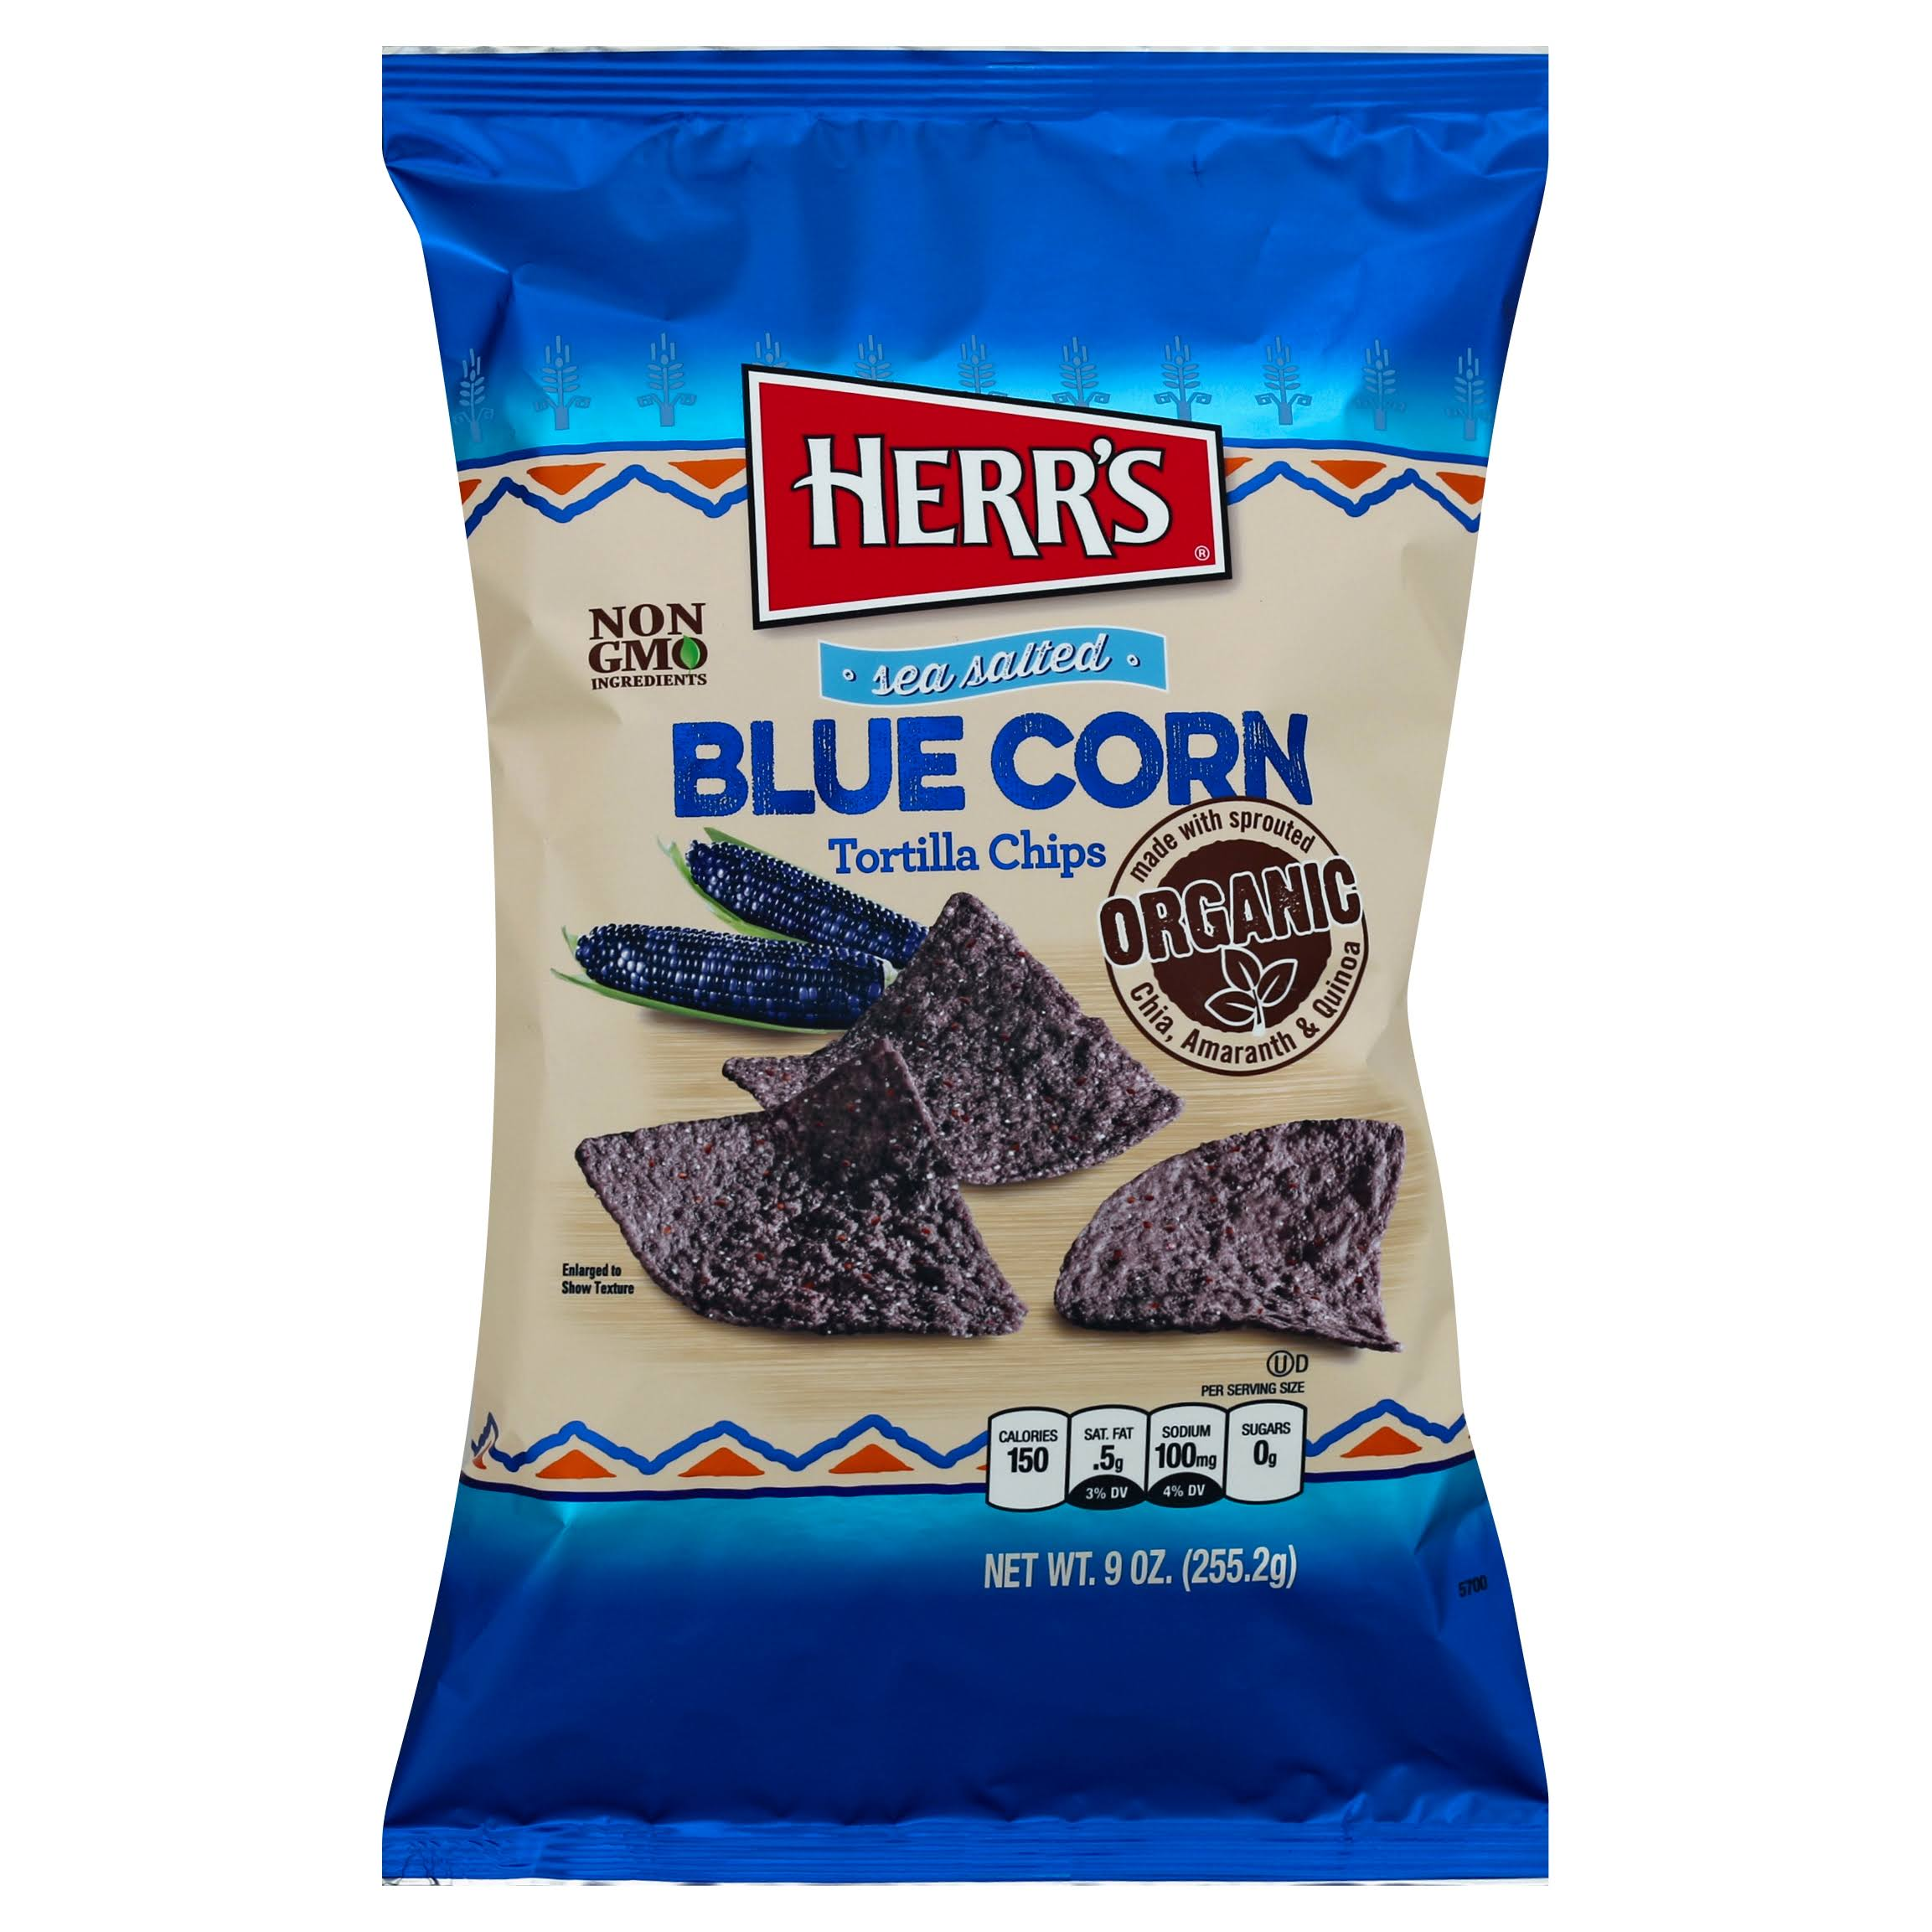 Herrs Tortilla Chips, Blue Corn, Sea Salted - 9 oz